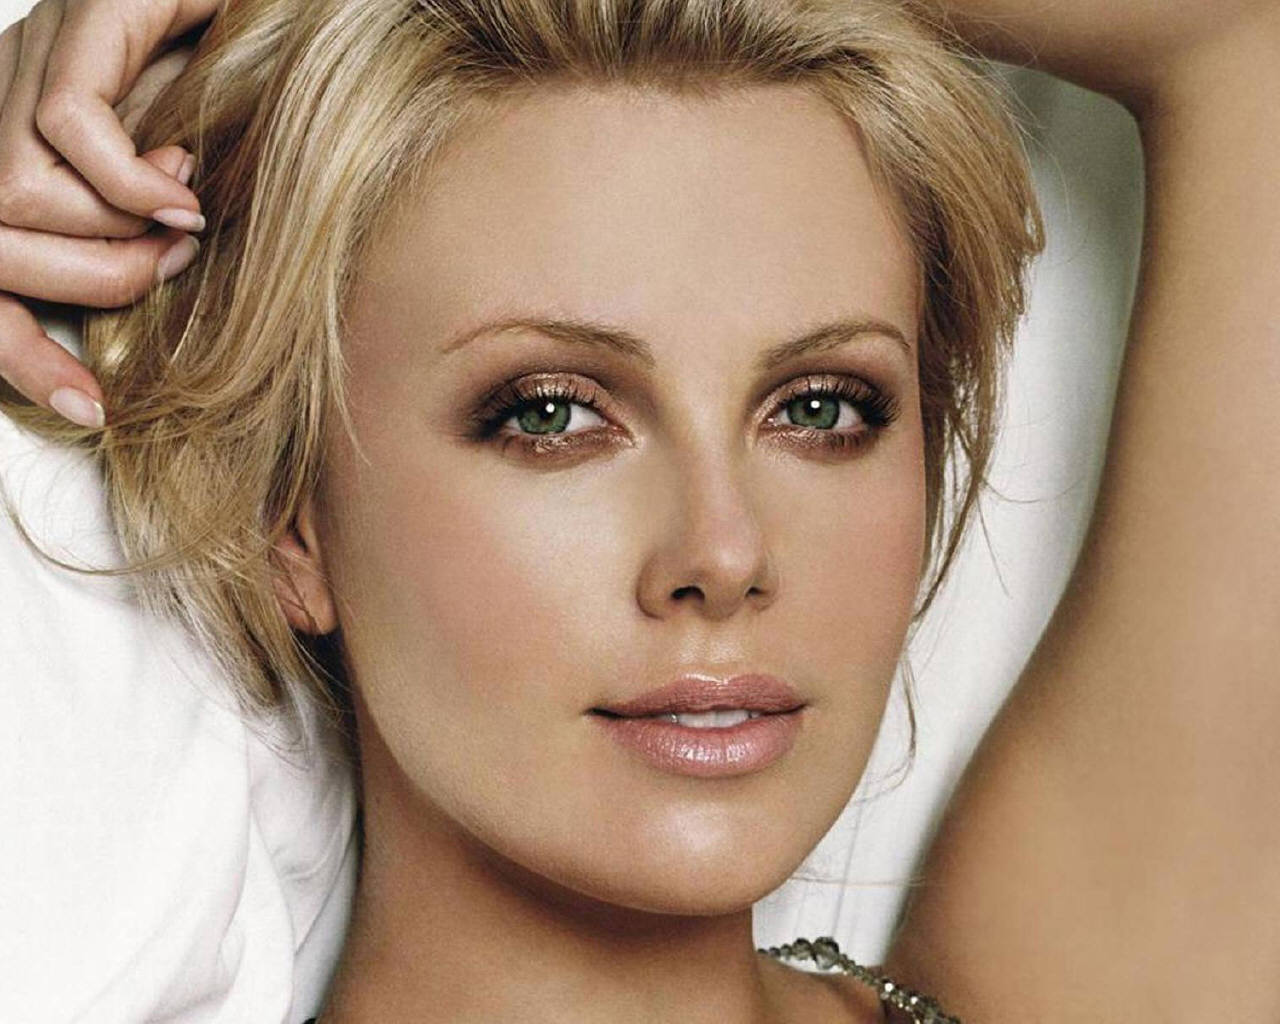 Charlize Theron images Charlize Theron HD wallpaper and background ... Charlize Theron